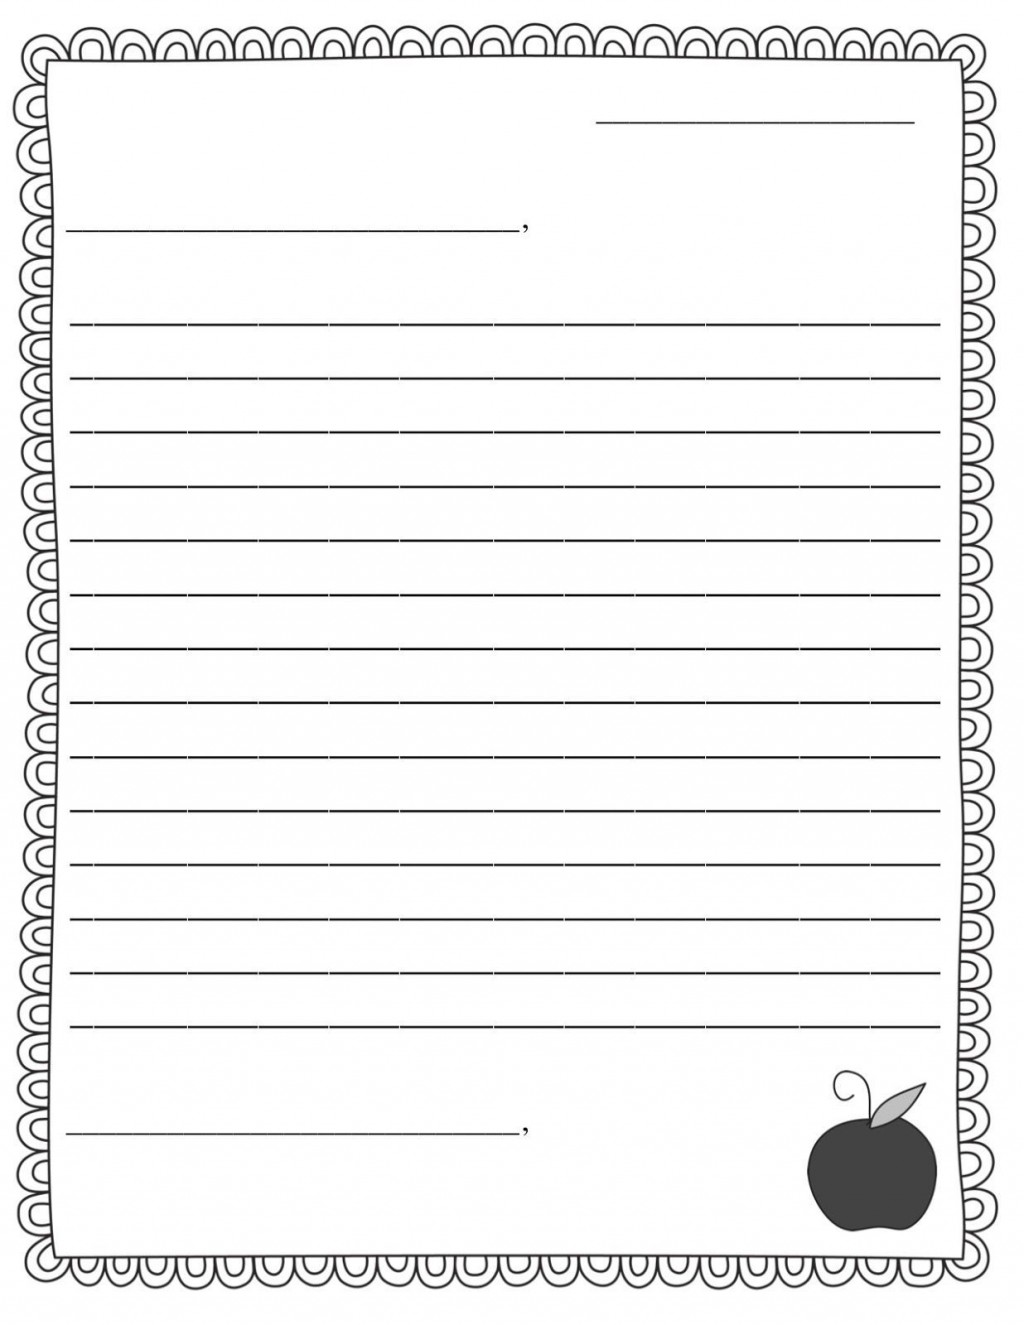 004 Marvelou Free Letter Writing Template For Student Photo  StudentsLarge